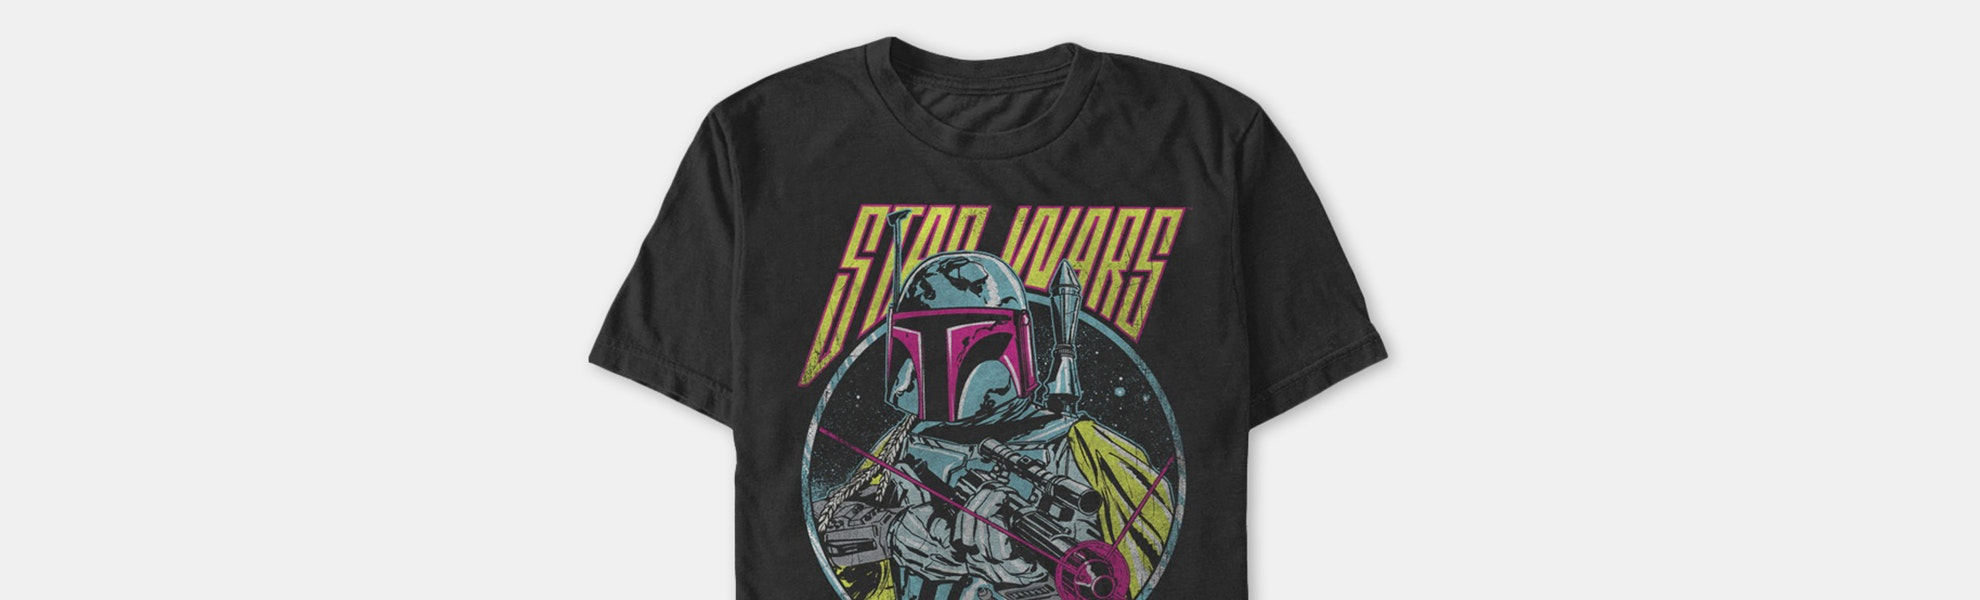 Fifth Sun Star Wars T-Shirts